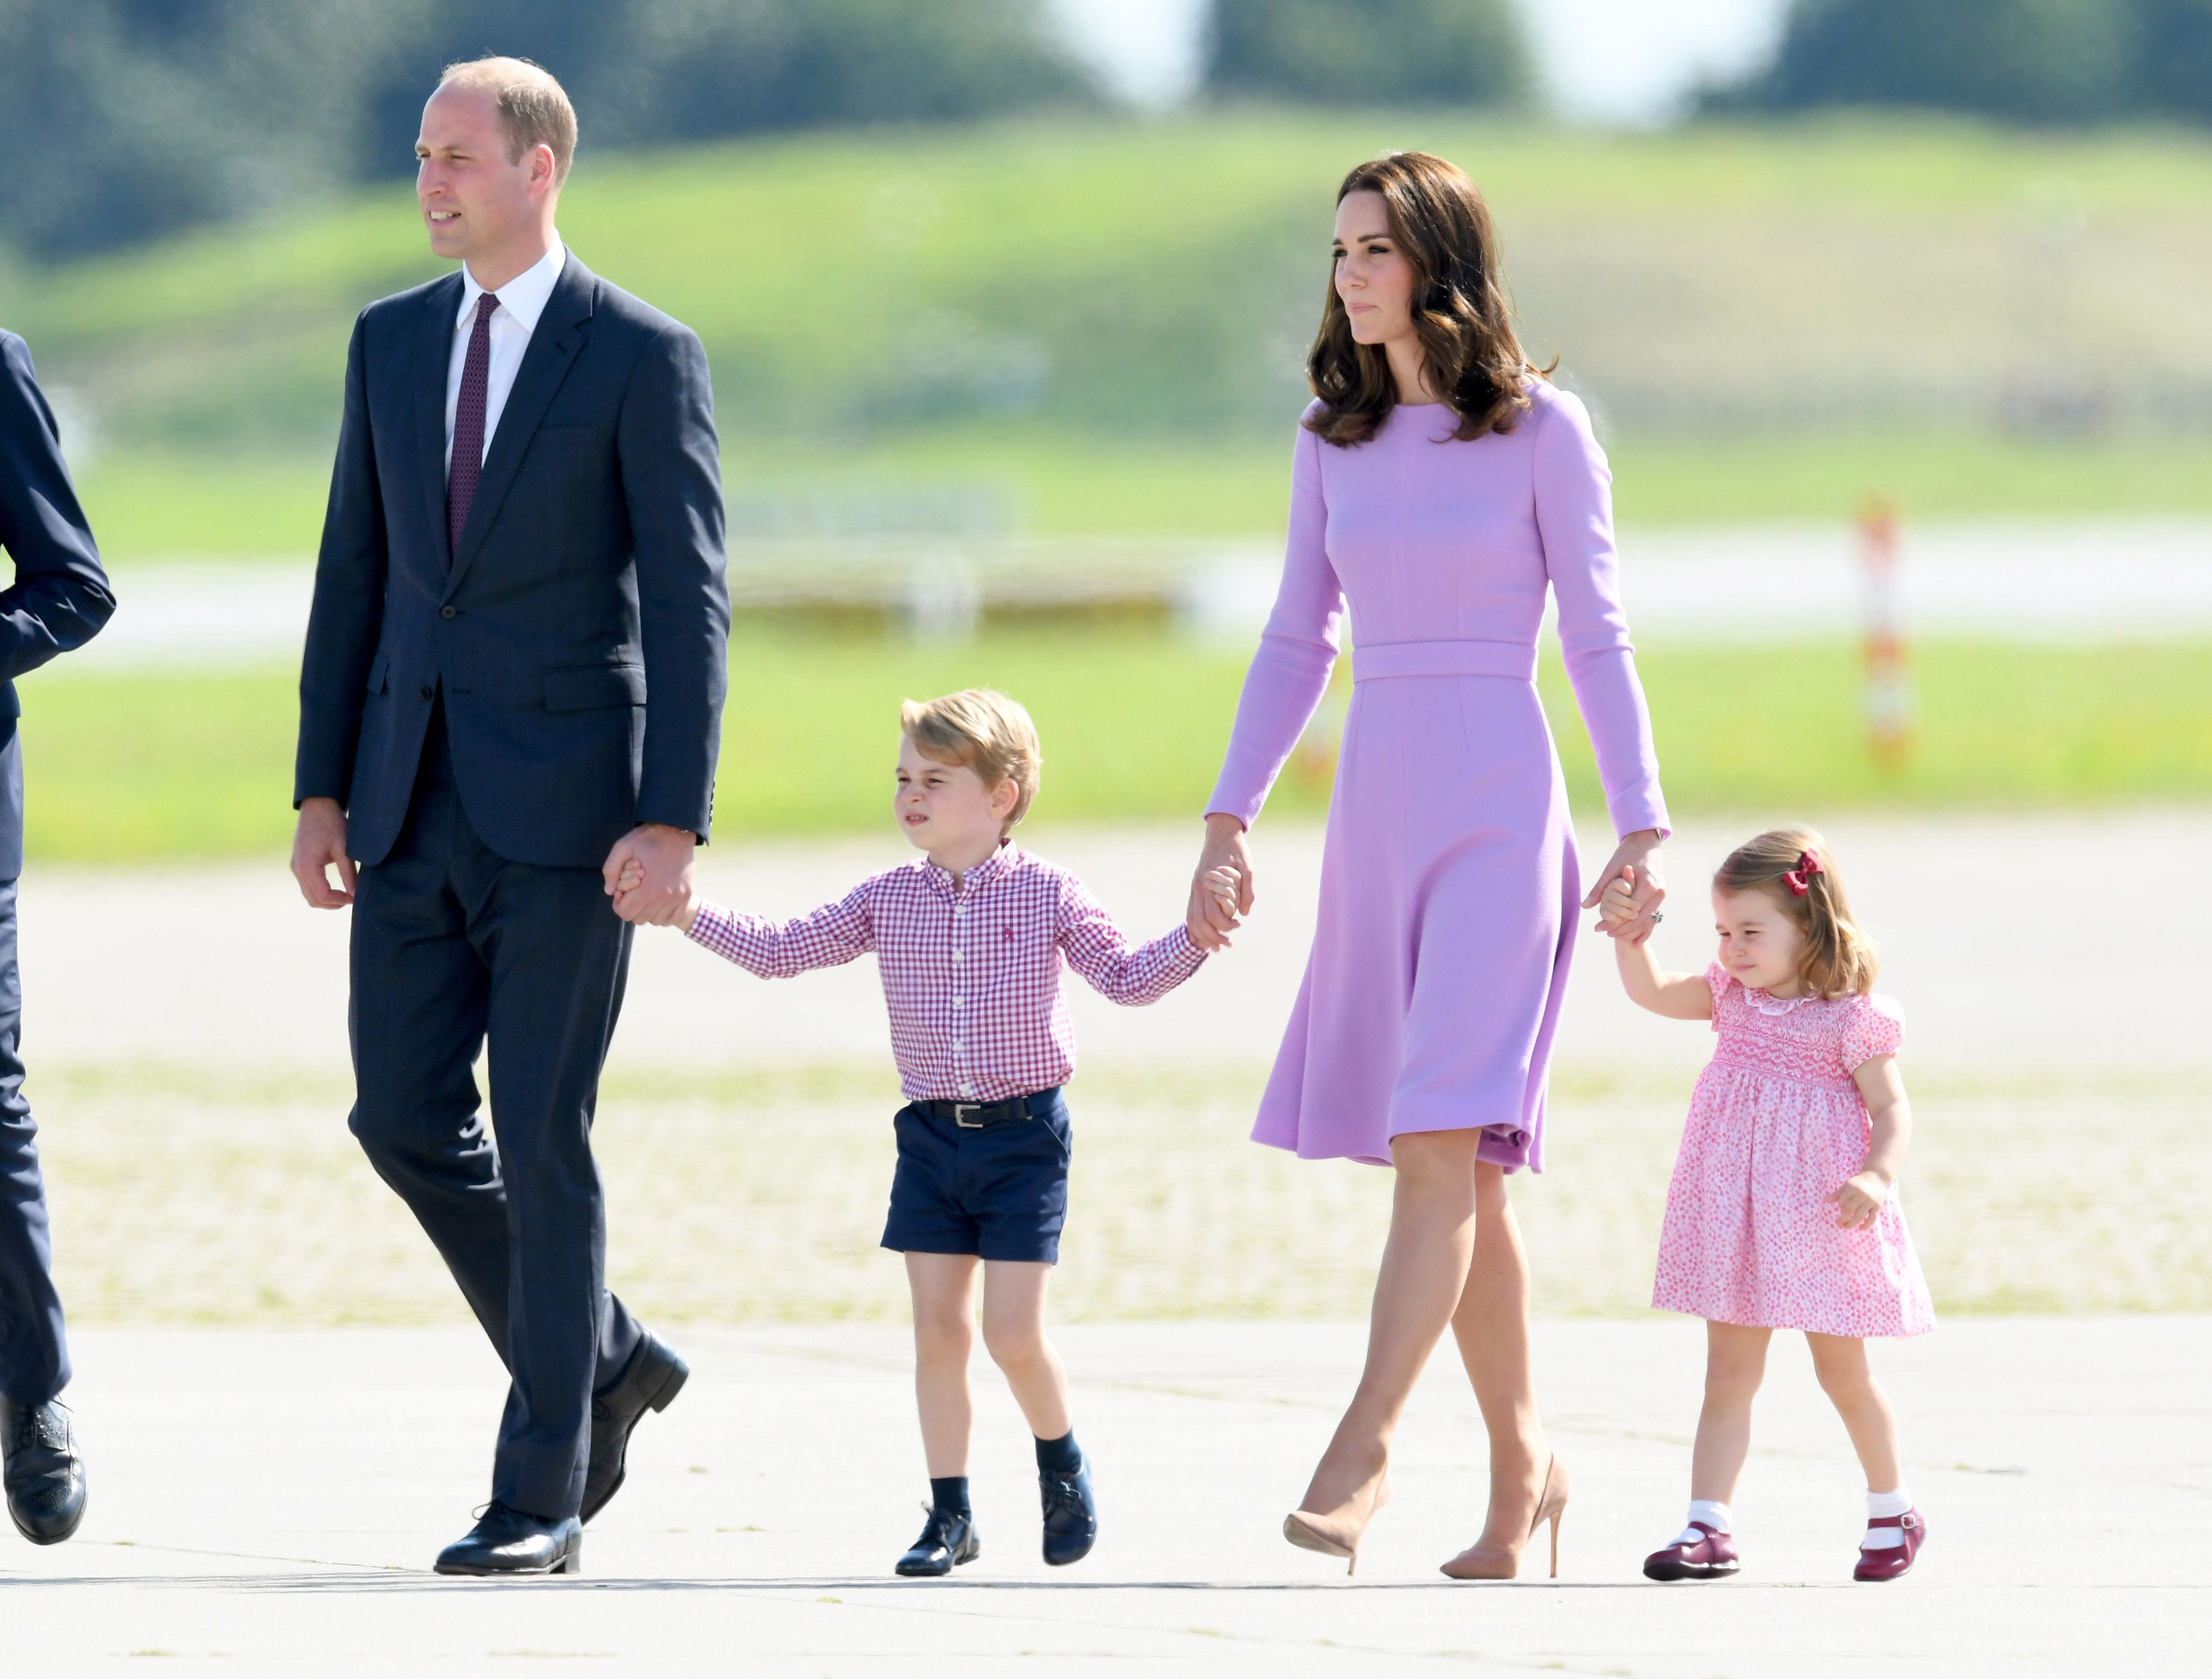 Kate and William with George and Charlotte duringa royal visit to Poland and Germany in 2017.